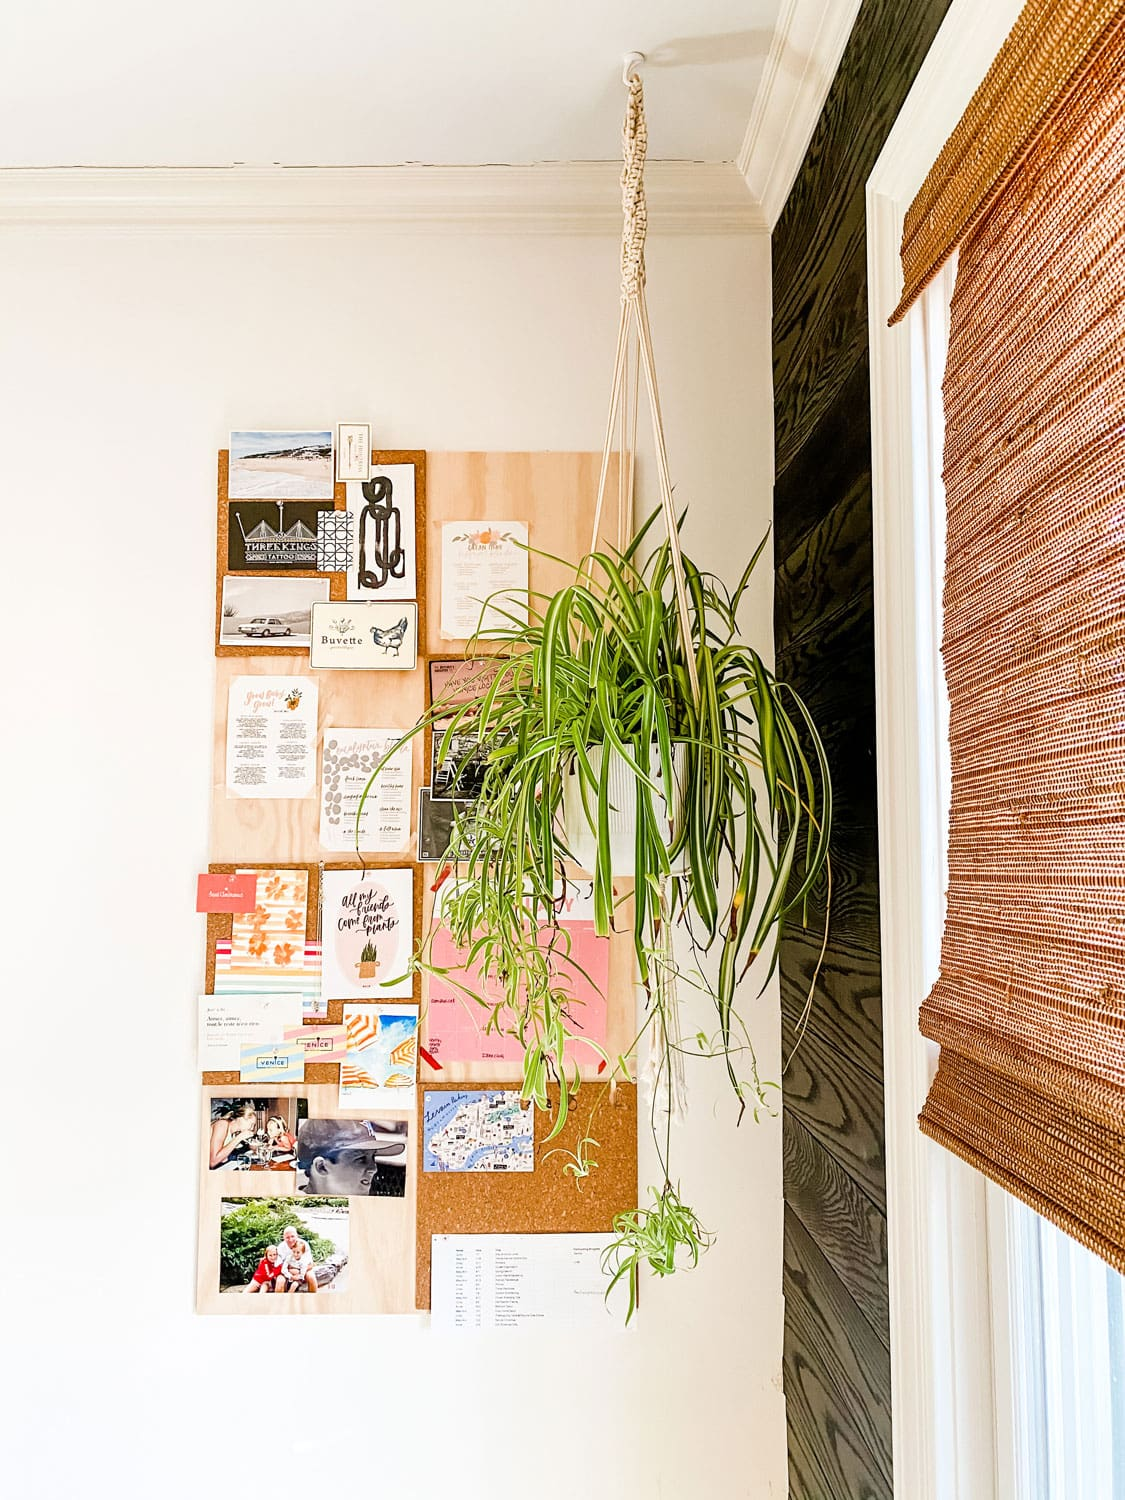 a cork board and plywood grid patten for bulletin board